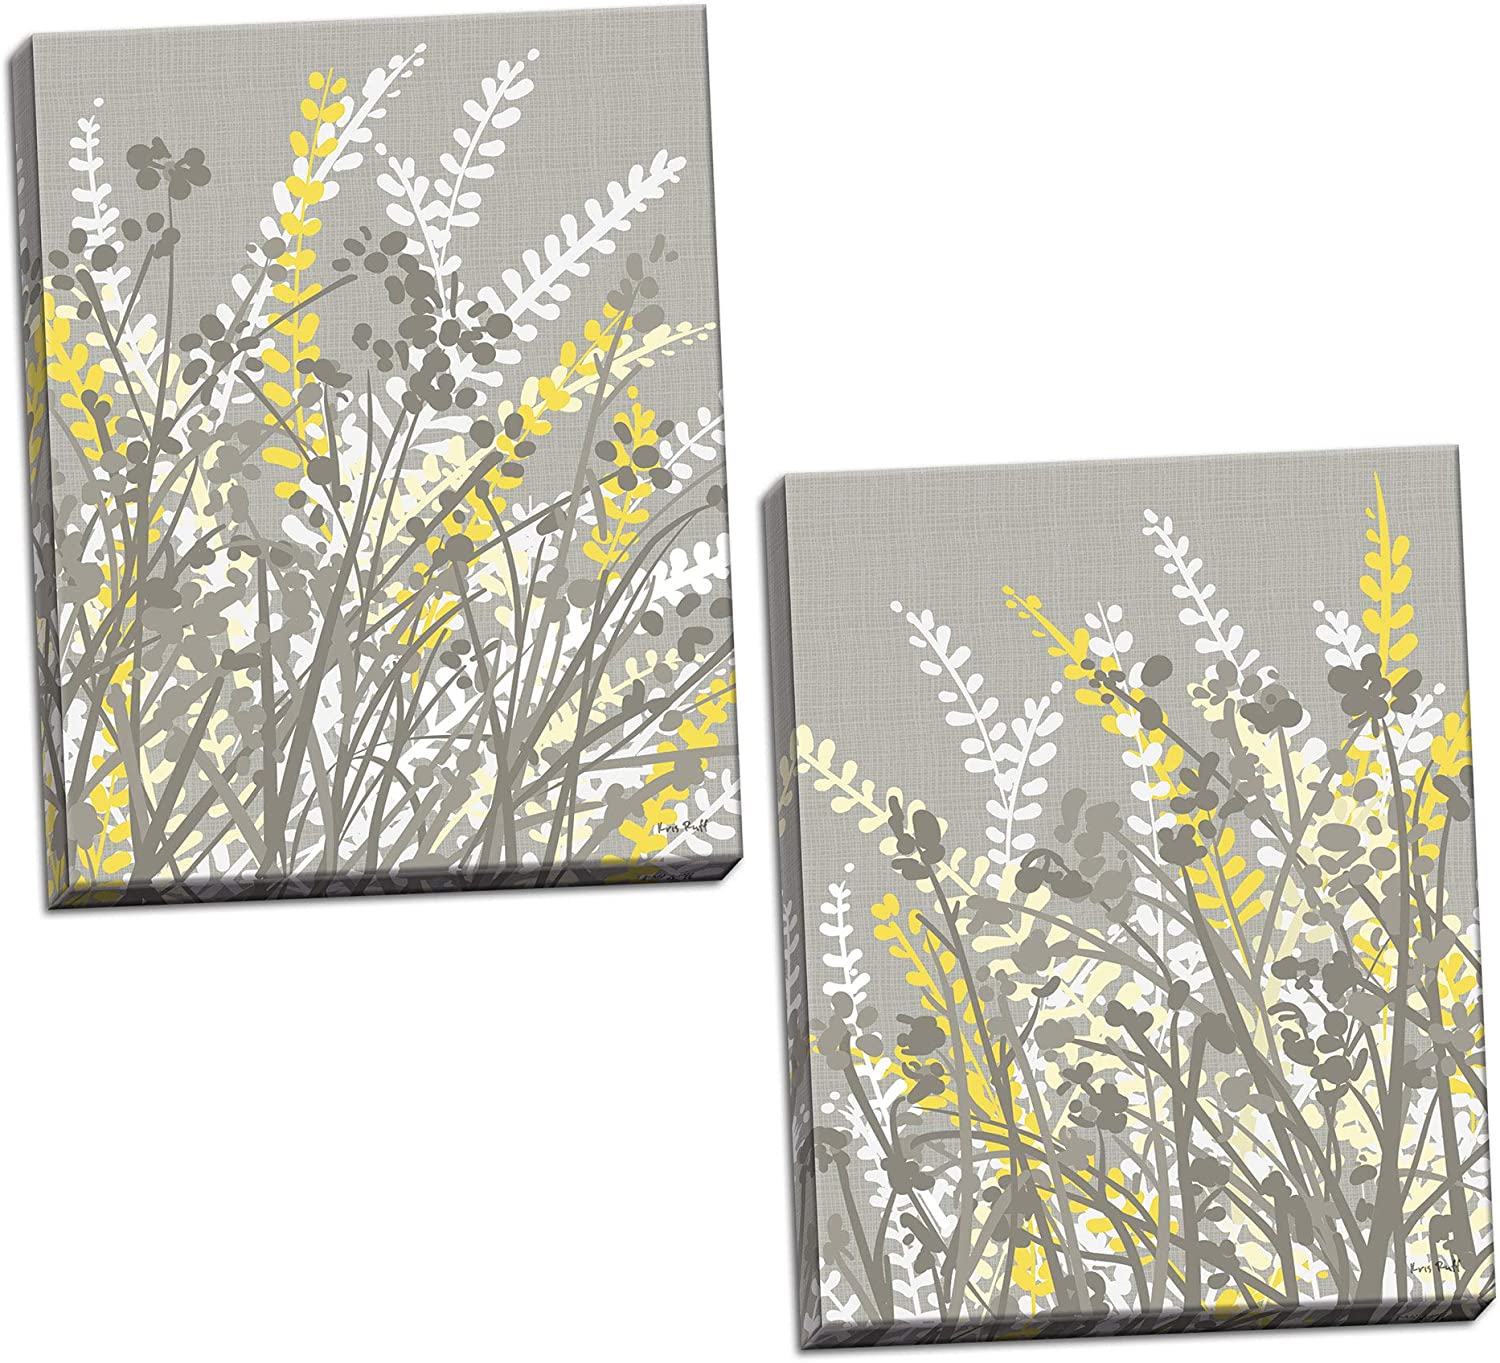 Gango Home Décor 2 Gray-Taupe, White and Yellow Floral Meadow Print Set; Two 16x20in Canvases